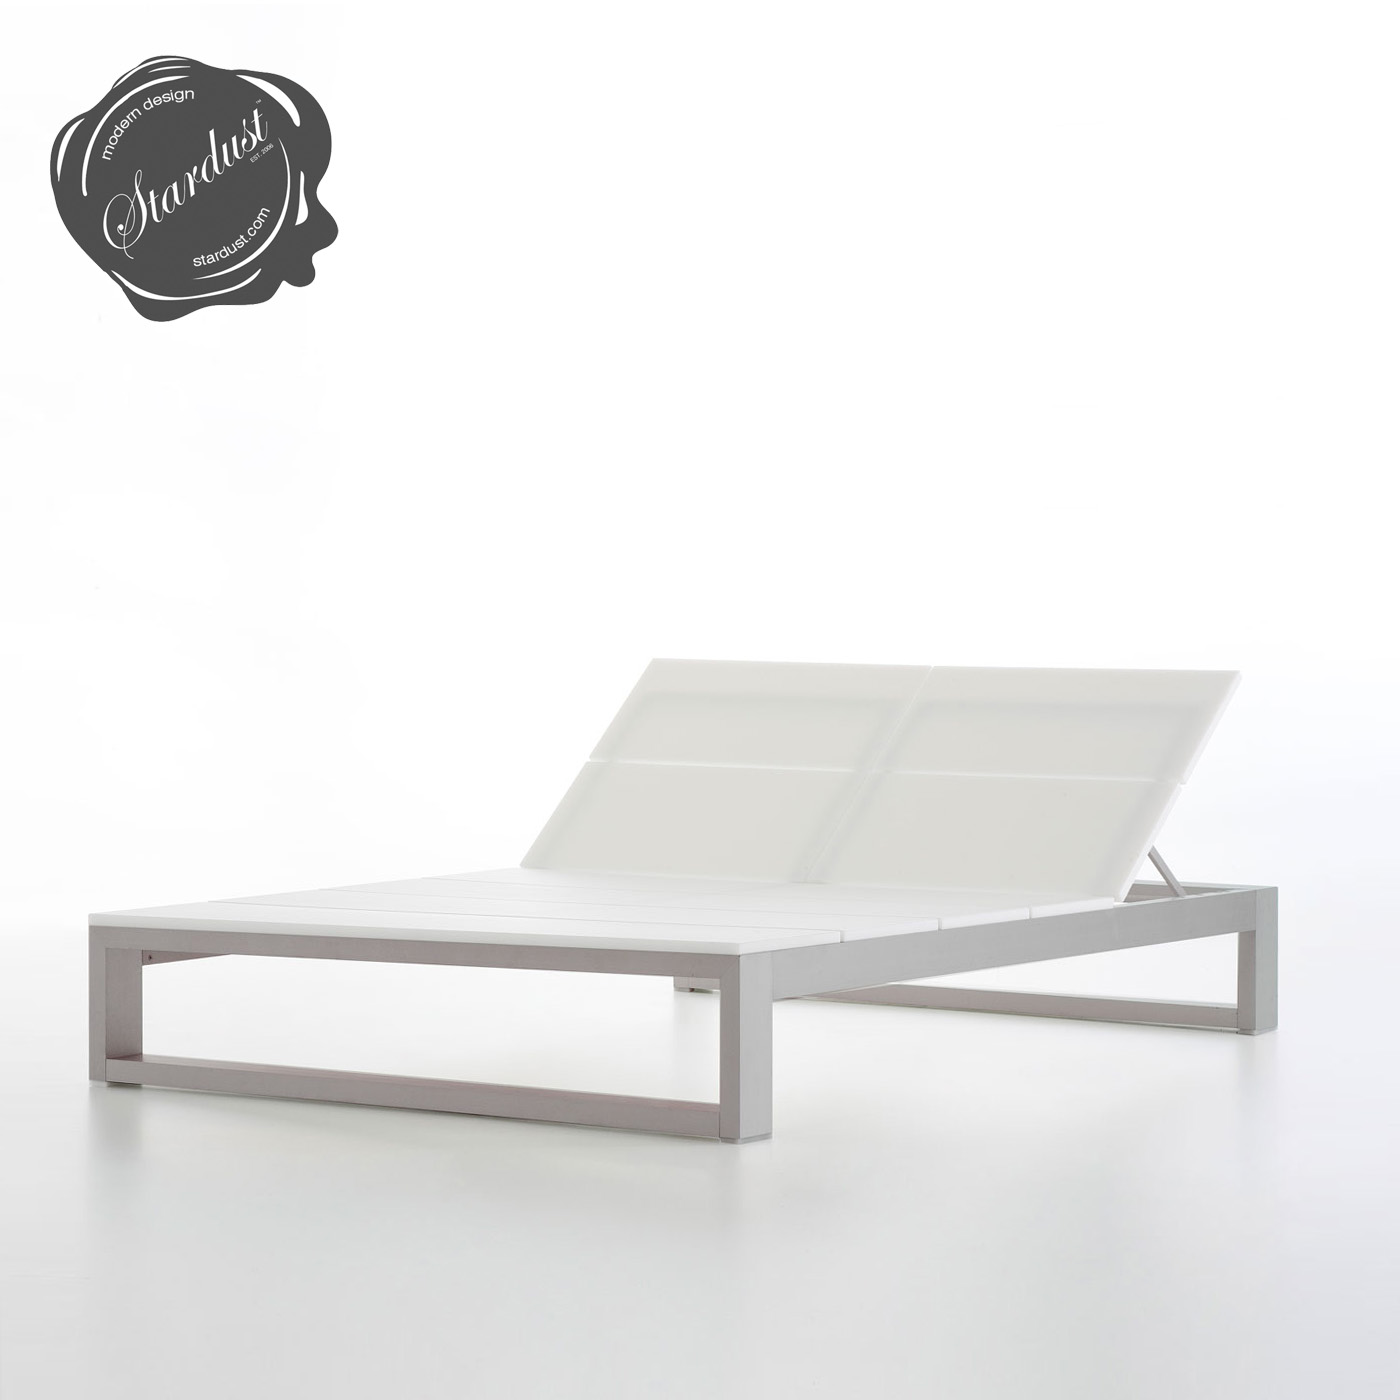 modern interior design double outdoor chaise lounge gandia  - double outdoor chaise lounge gandia blasco tumbona na xemena es cavallet  modernoutdoor lounge chaise